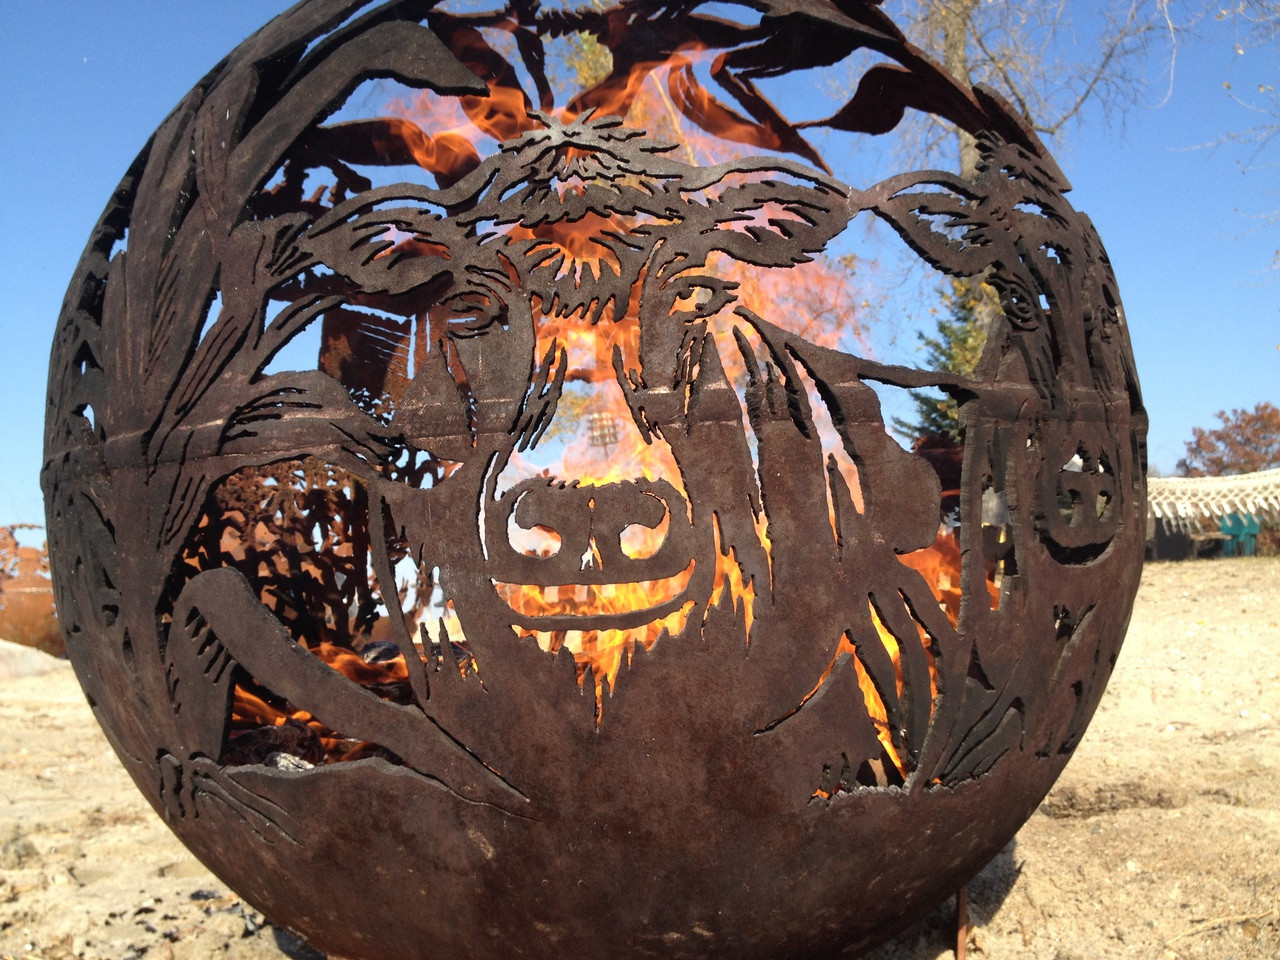 Fireball Fire Pits - Farm - 37.5 inch Fire Globe - Fireball Fire Pits - Farm - 37.5 Inch Fire Globe - 3715FA - The Fire